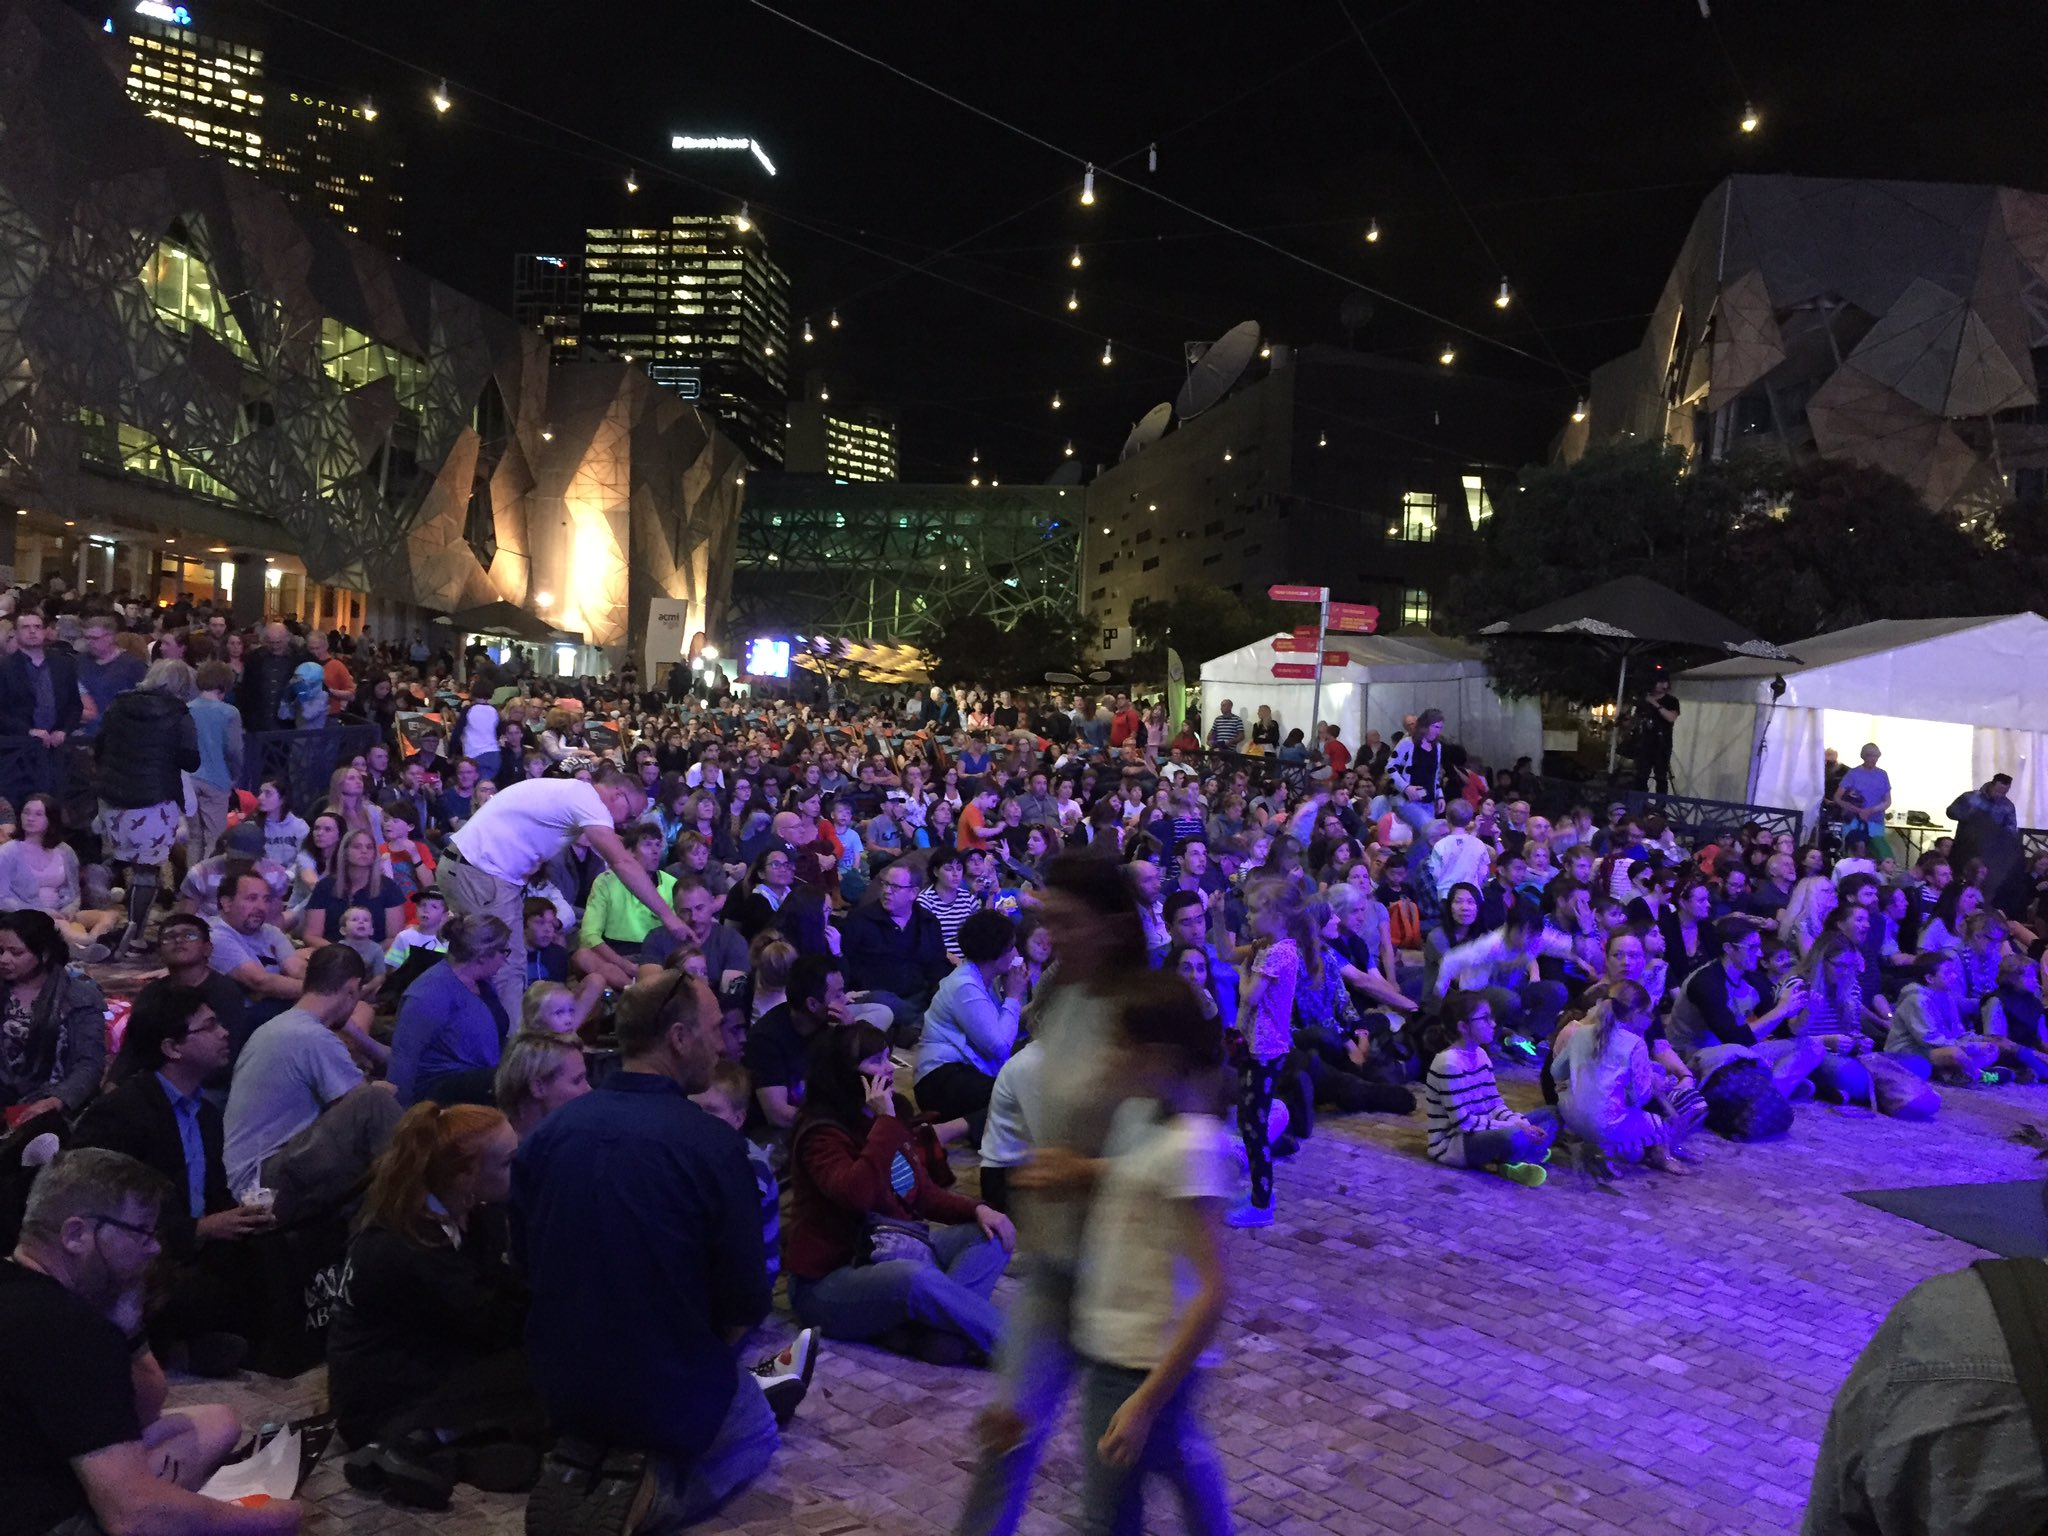 Fantastic crowd here at @FedSquare for #StargazingABC tonight! https://t.co/rb6rVua4BZ